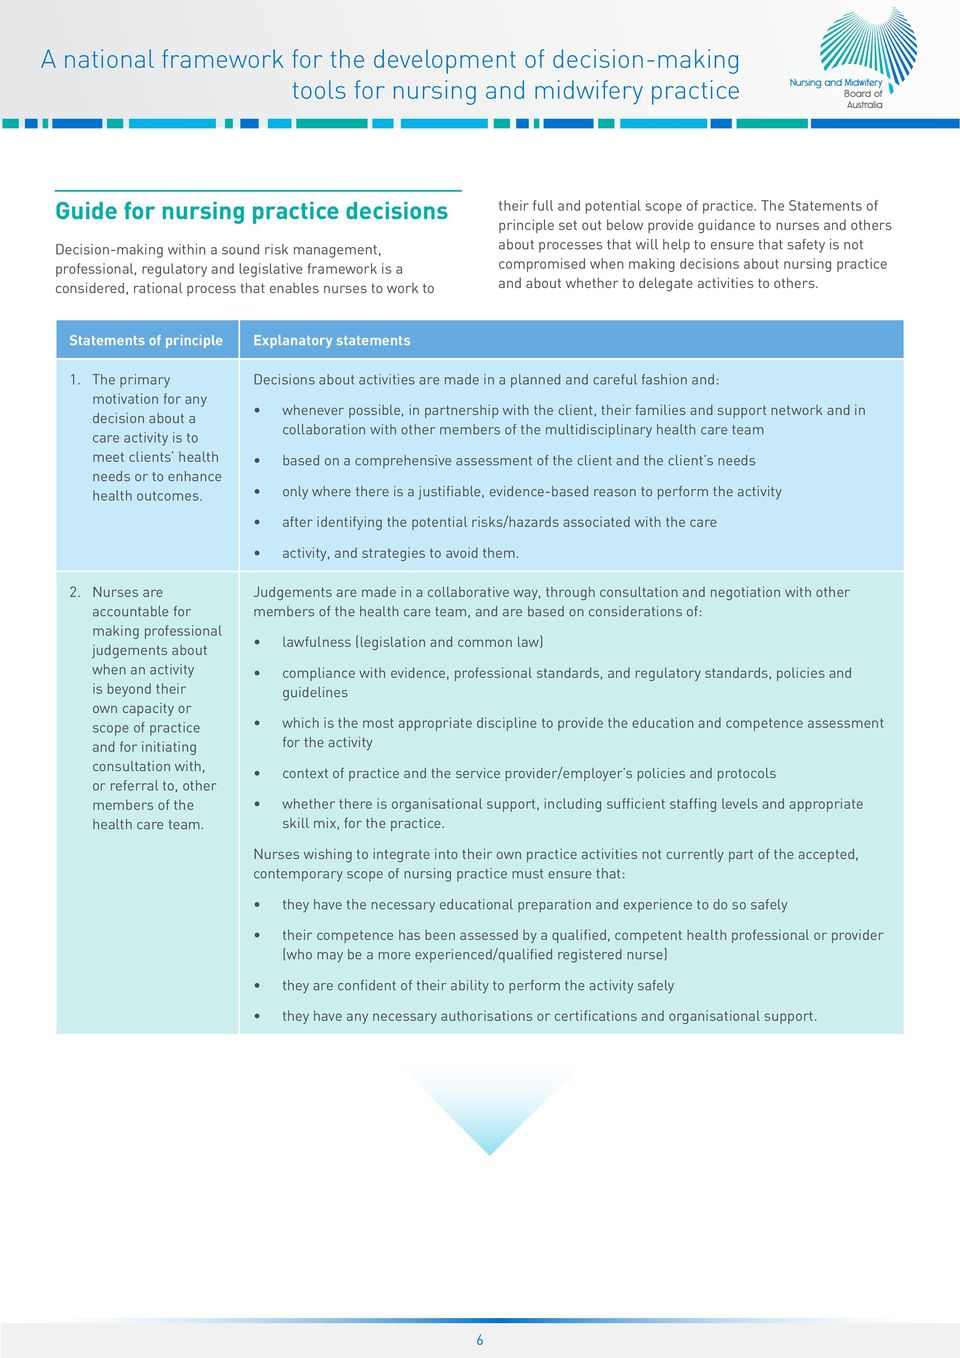 The Statements of principle set out below provide guidance to nurses and others about processes that will help to ensure that safety is not compromised when making decisions about nursing practice